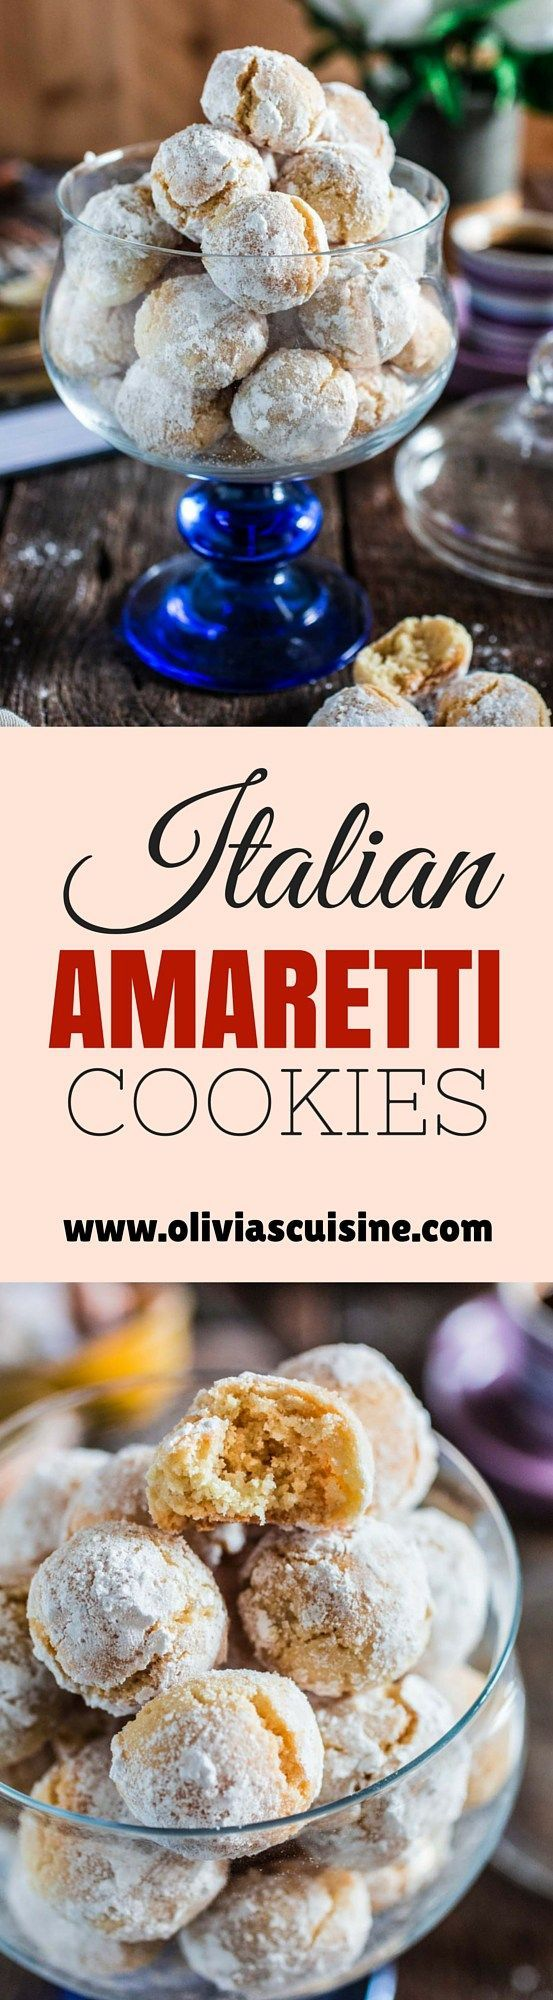 Amaretti cookies, Cookies and Cup of coffee on Pinterest